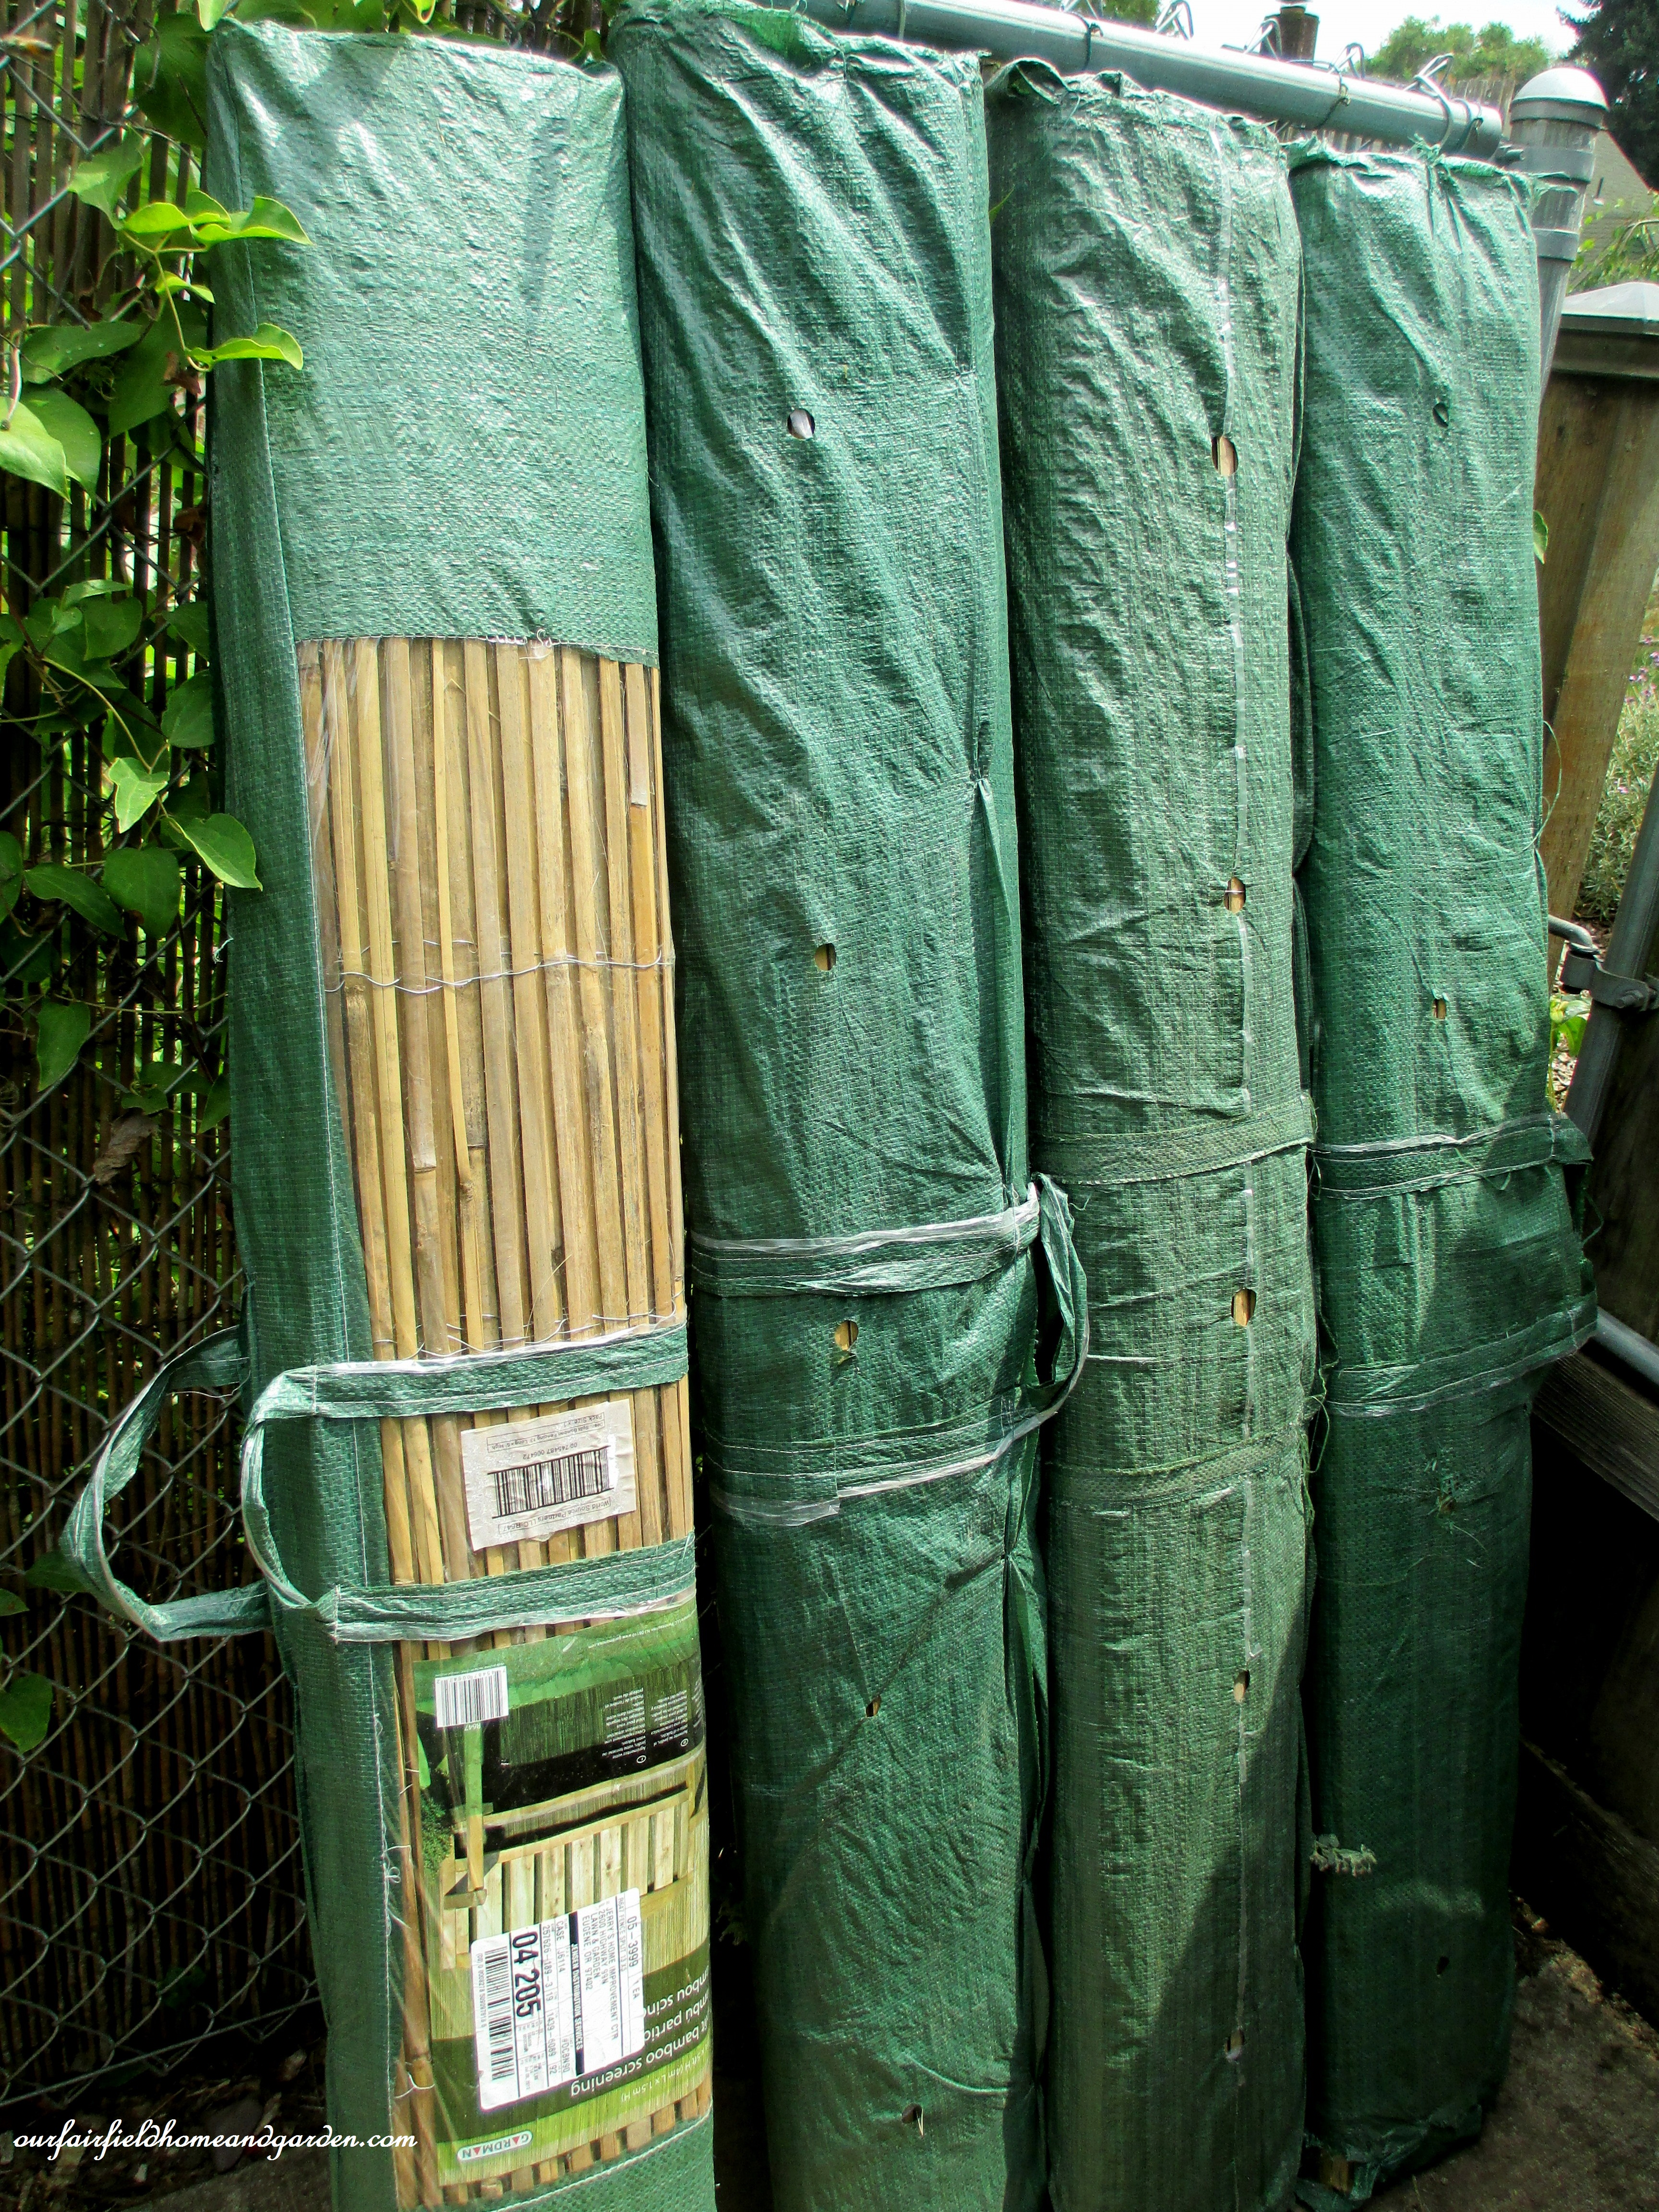 Picture of: Garden Fence Bamboo Diy Bamboo Fence Screen Is Easy To Build Youtube 1280×720 Jpeg Bamboo Garden Fence Ideas Also Diy Bamboo Fence Additionally Bamboo Garden Fence From Varying Lengths Of Bamboo From